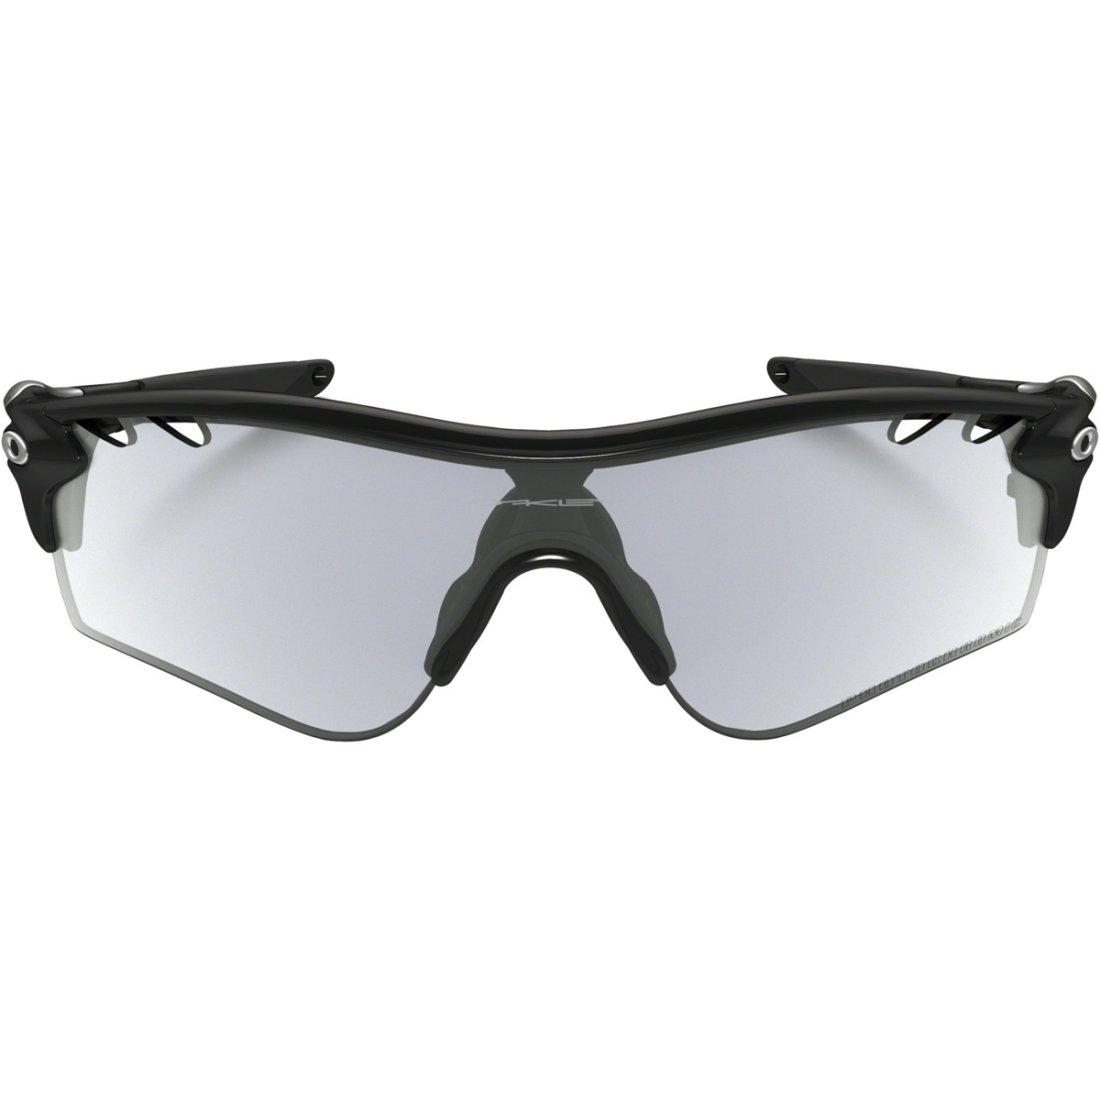 46257133f7b1e Máscara   Óculos OAKLEY Radarlock Photochromic Black   Clear Black Iridium  Activated